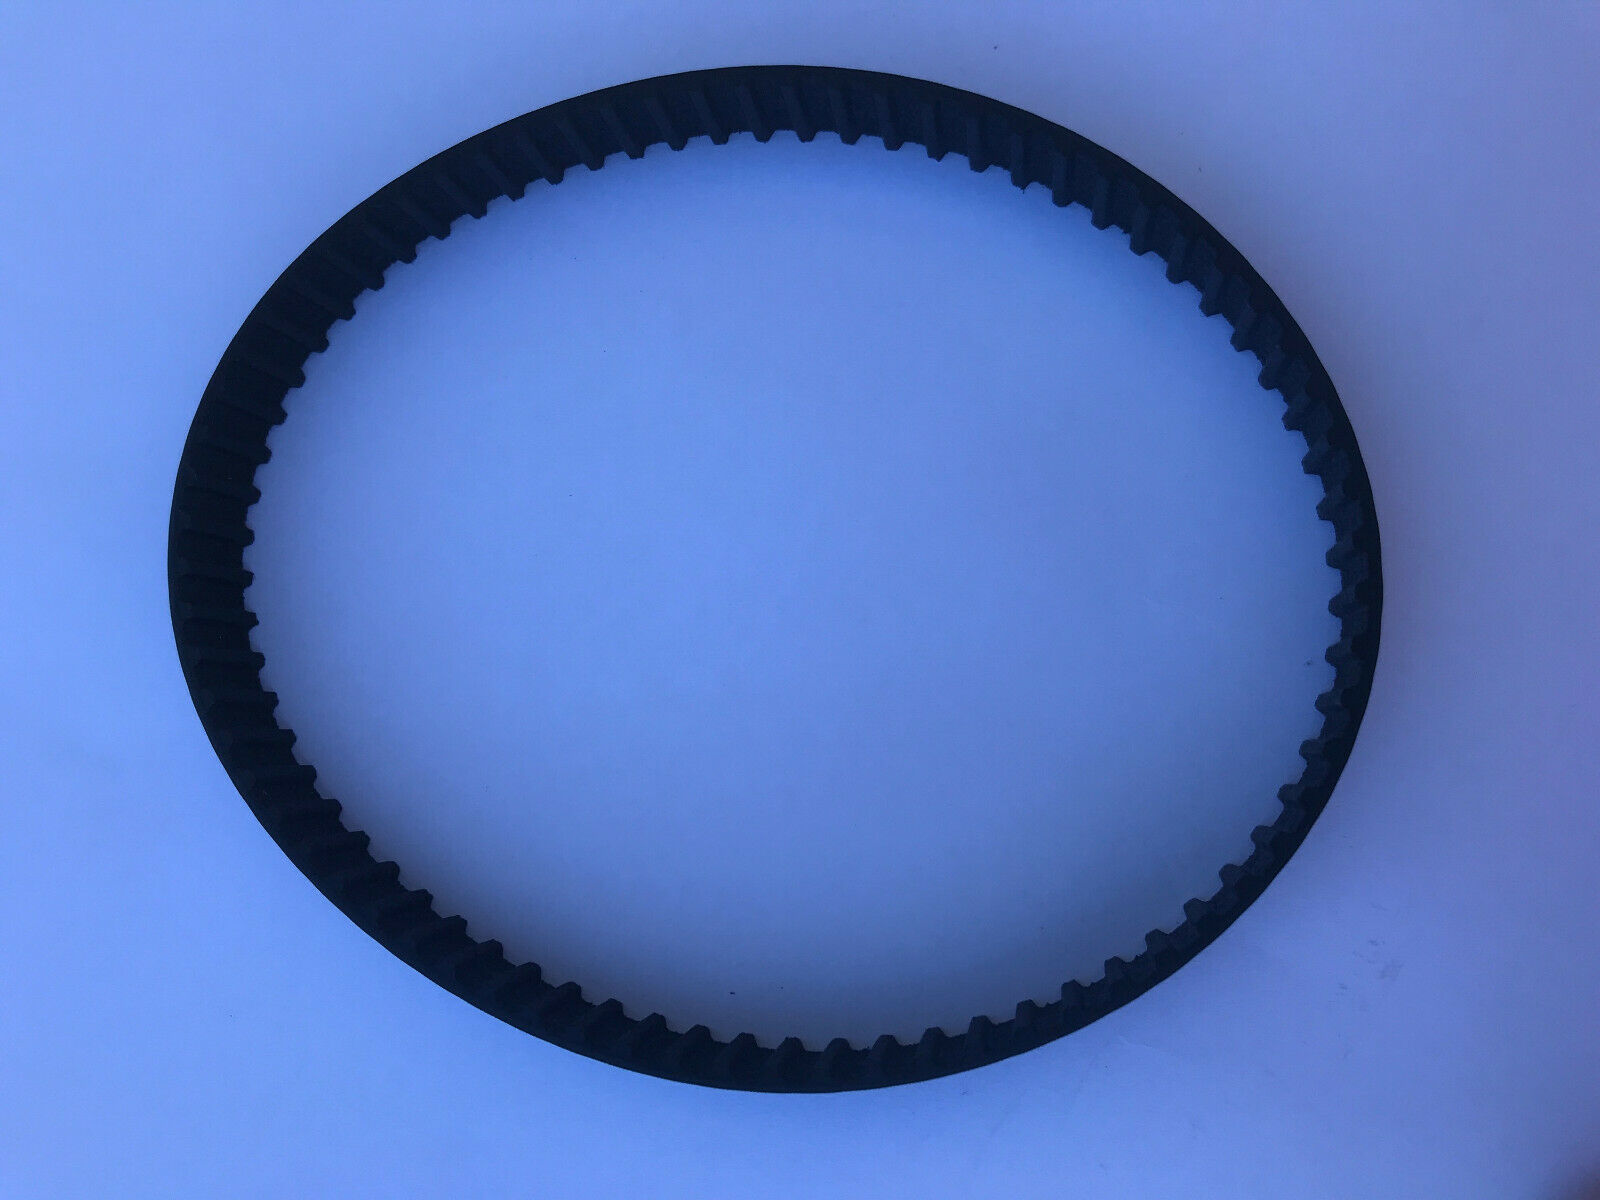 NEW Replacement BELT for Sears Craftsman 207.22399 4 x 24 Dustless Sander